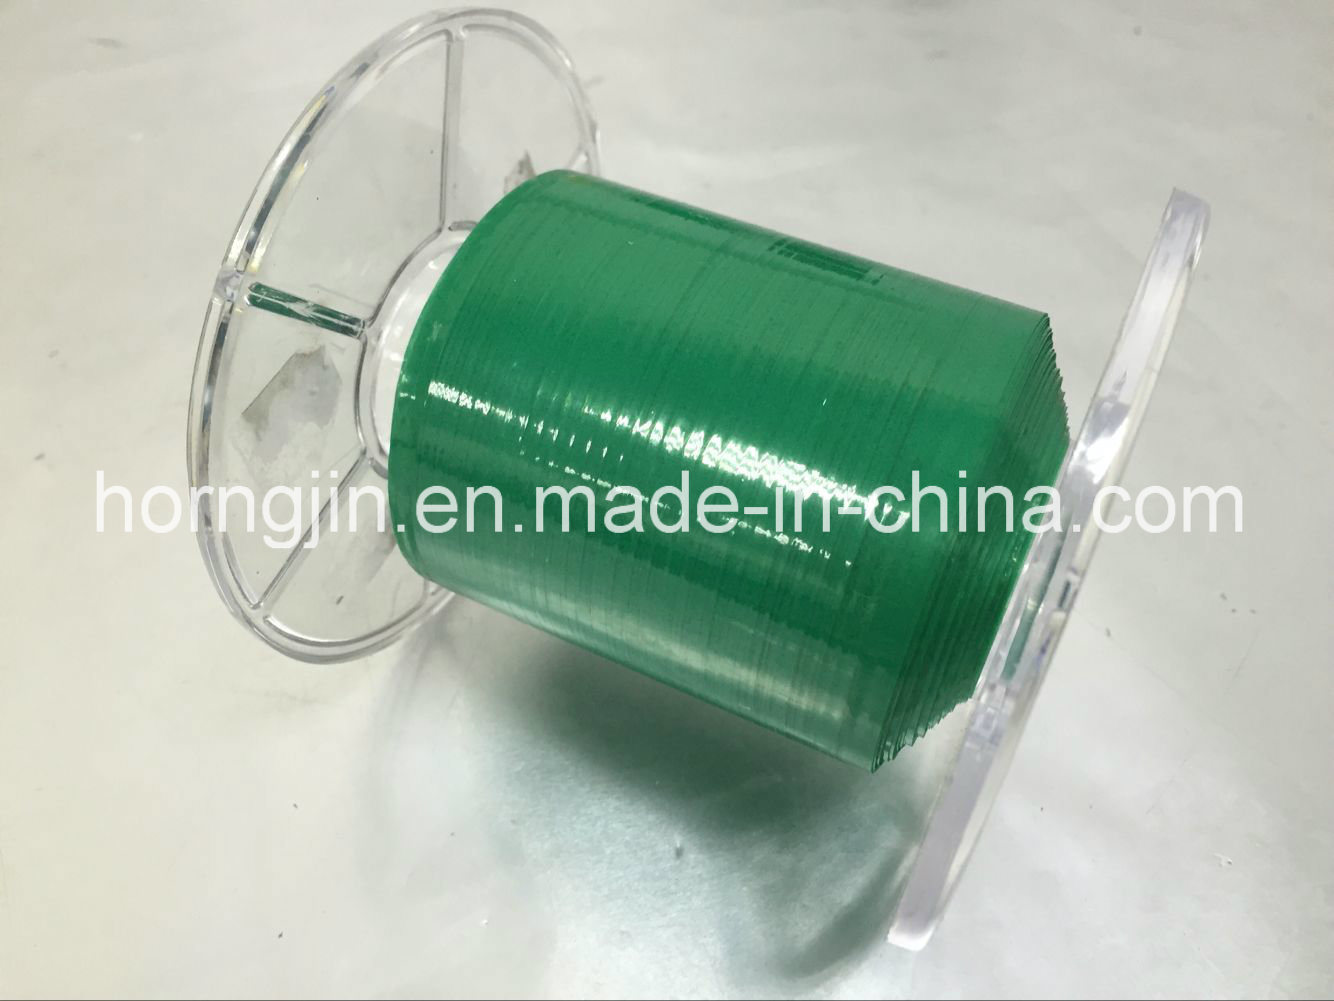 Minuteness Polyester Tape Colorful Hot Melt Mylar Coating Insulation Pet Tape for Wire Wraping&Shielding